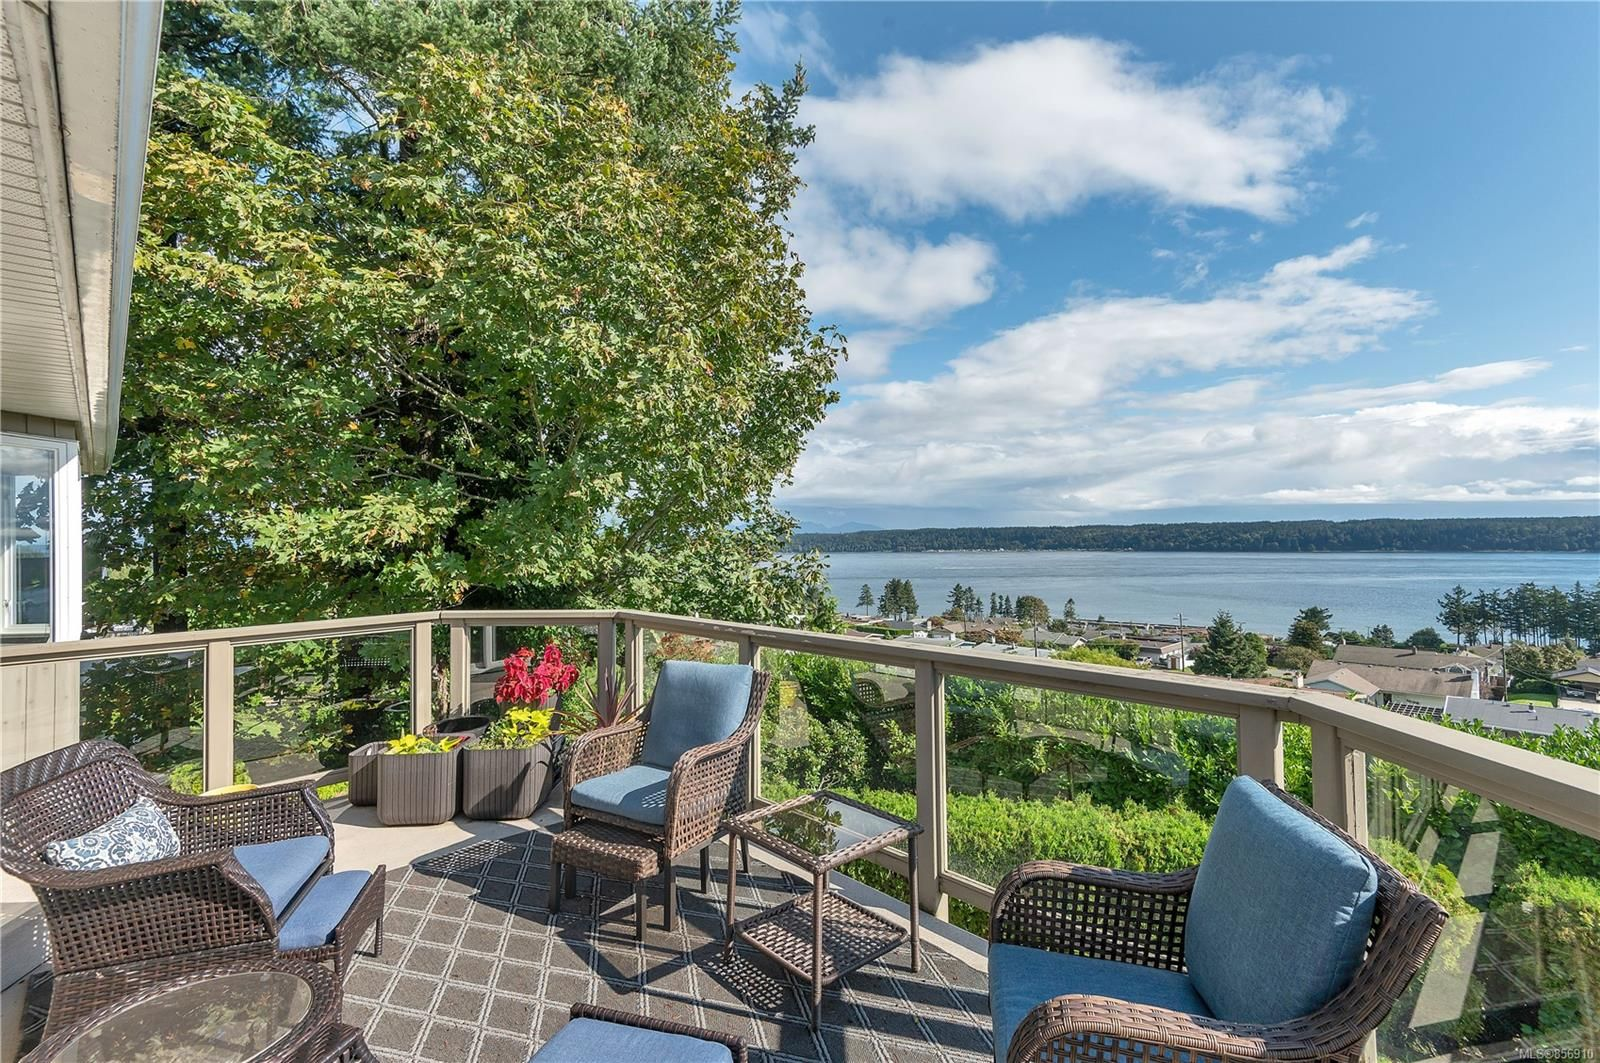 Photo 19: Photos: 215 S Alder St in : CR Campbell River Central House for sale (Campbell River)  : MLS®# 856910